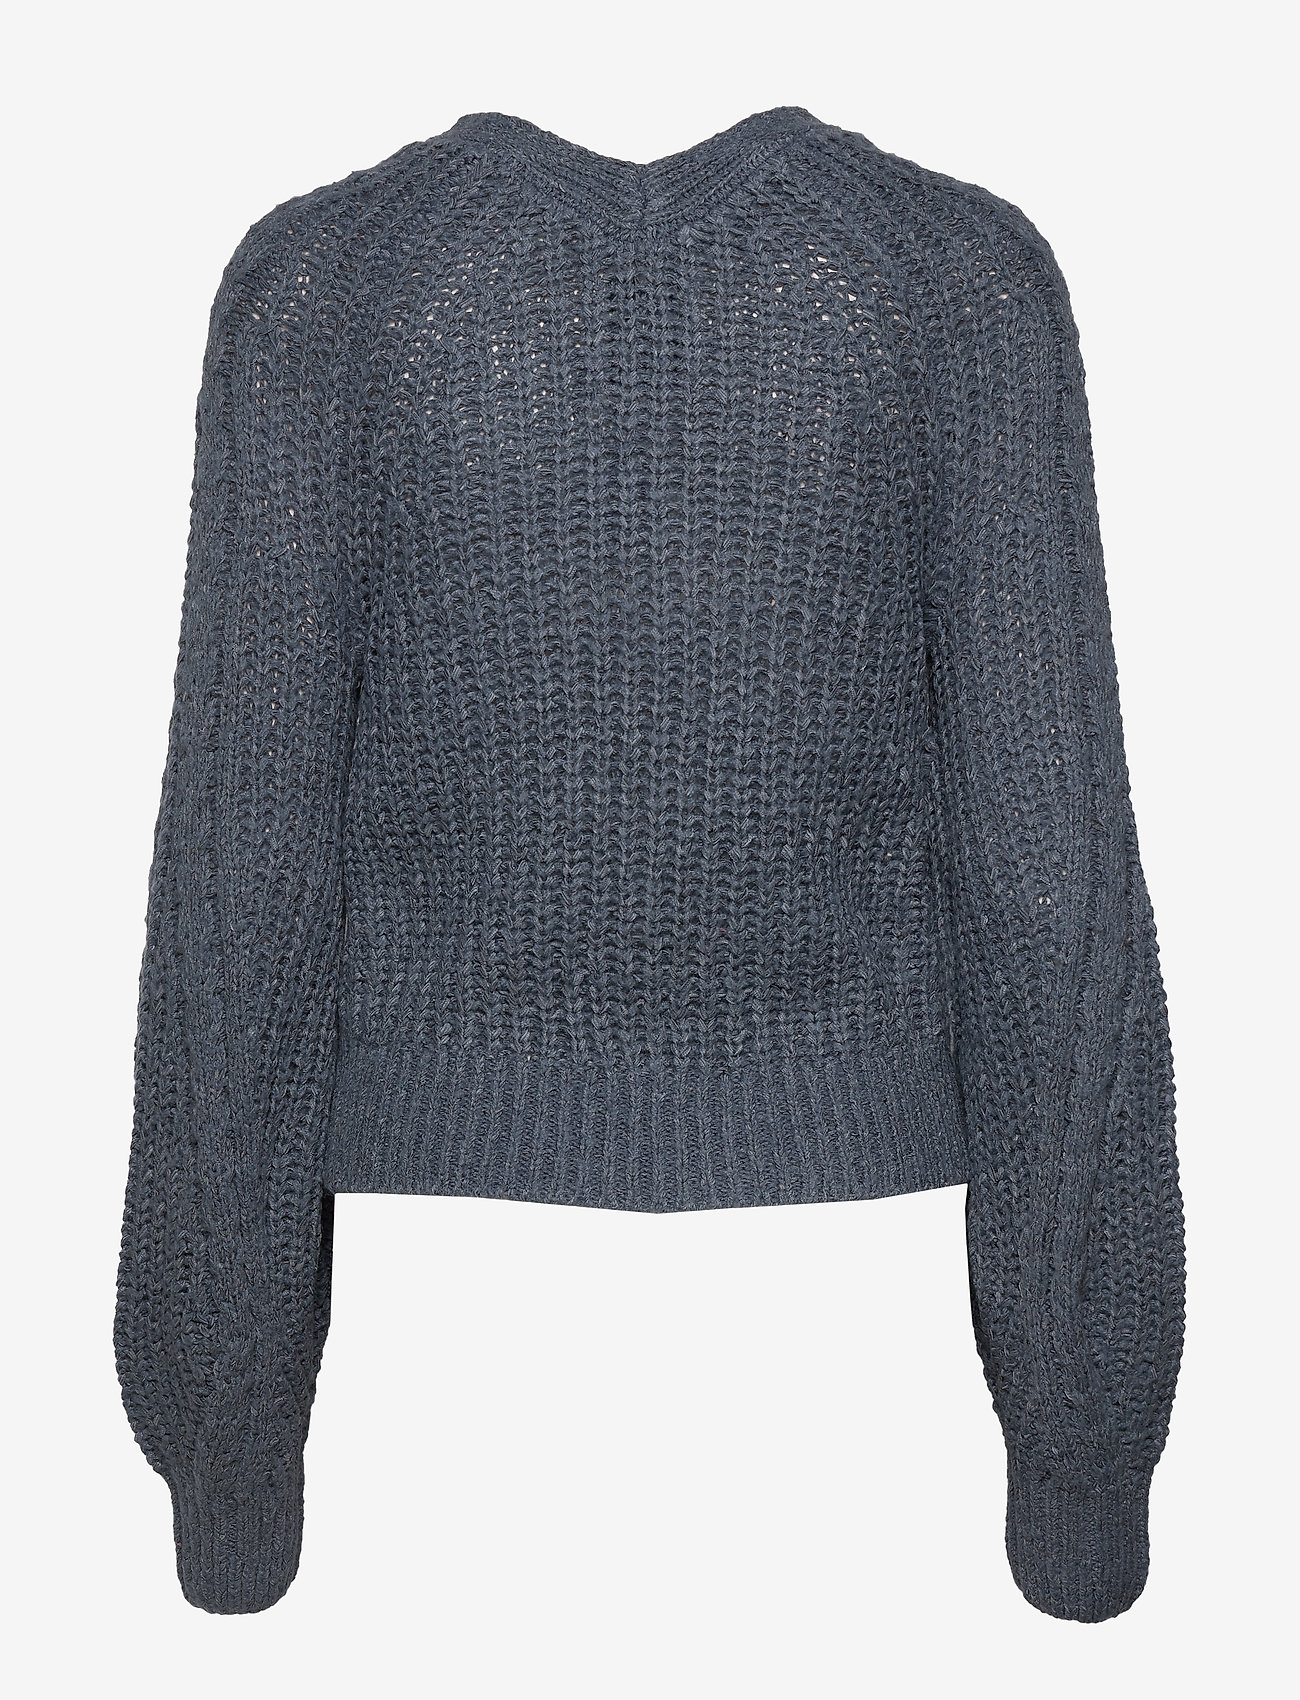 Short Stichy Cardi (Med Blue Sd/texture) - Abercrombie & Fitch AAxwwc